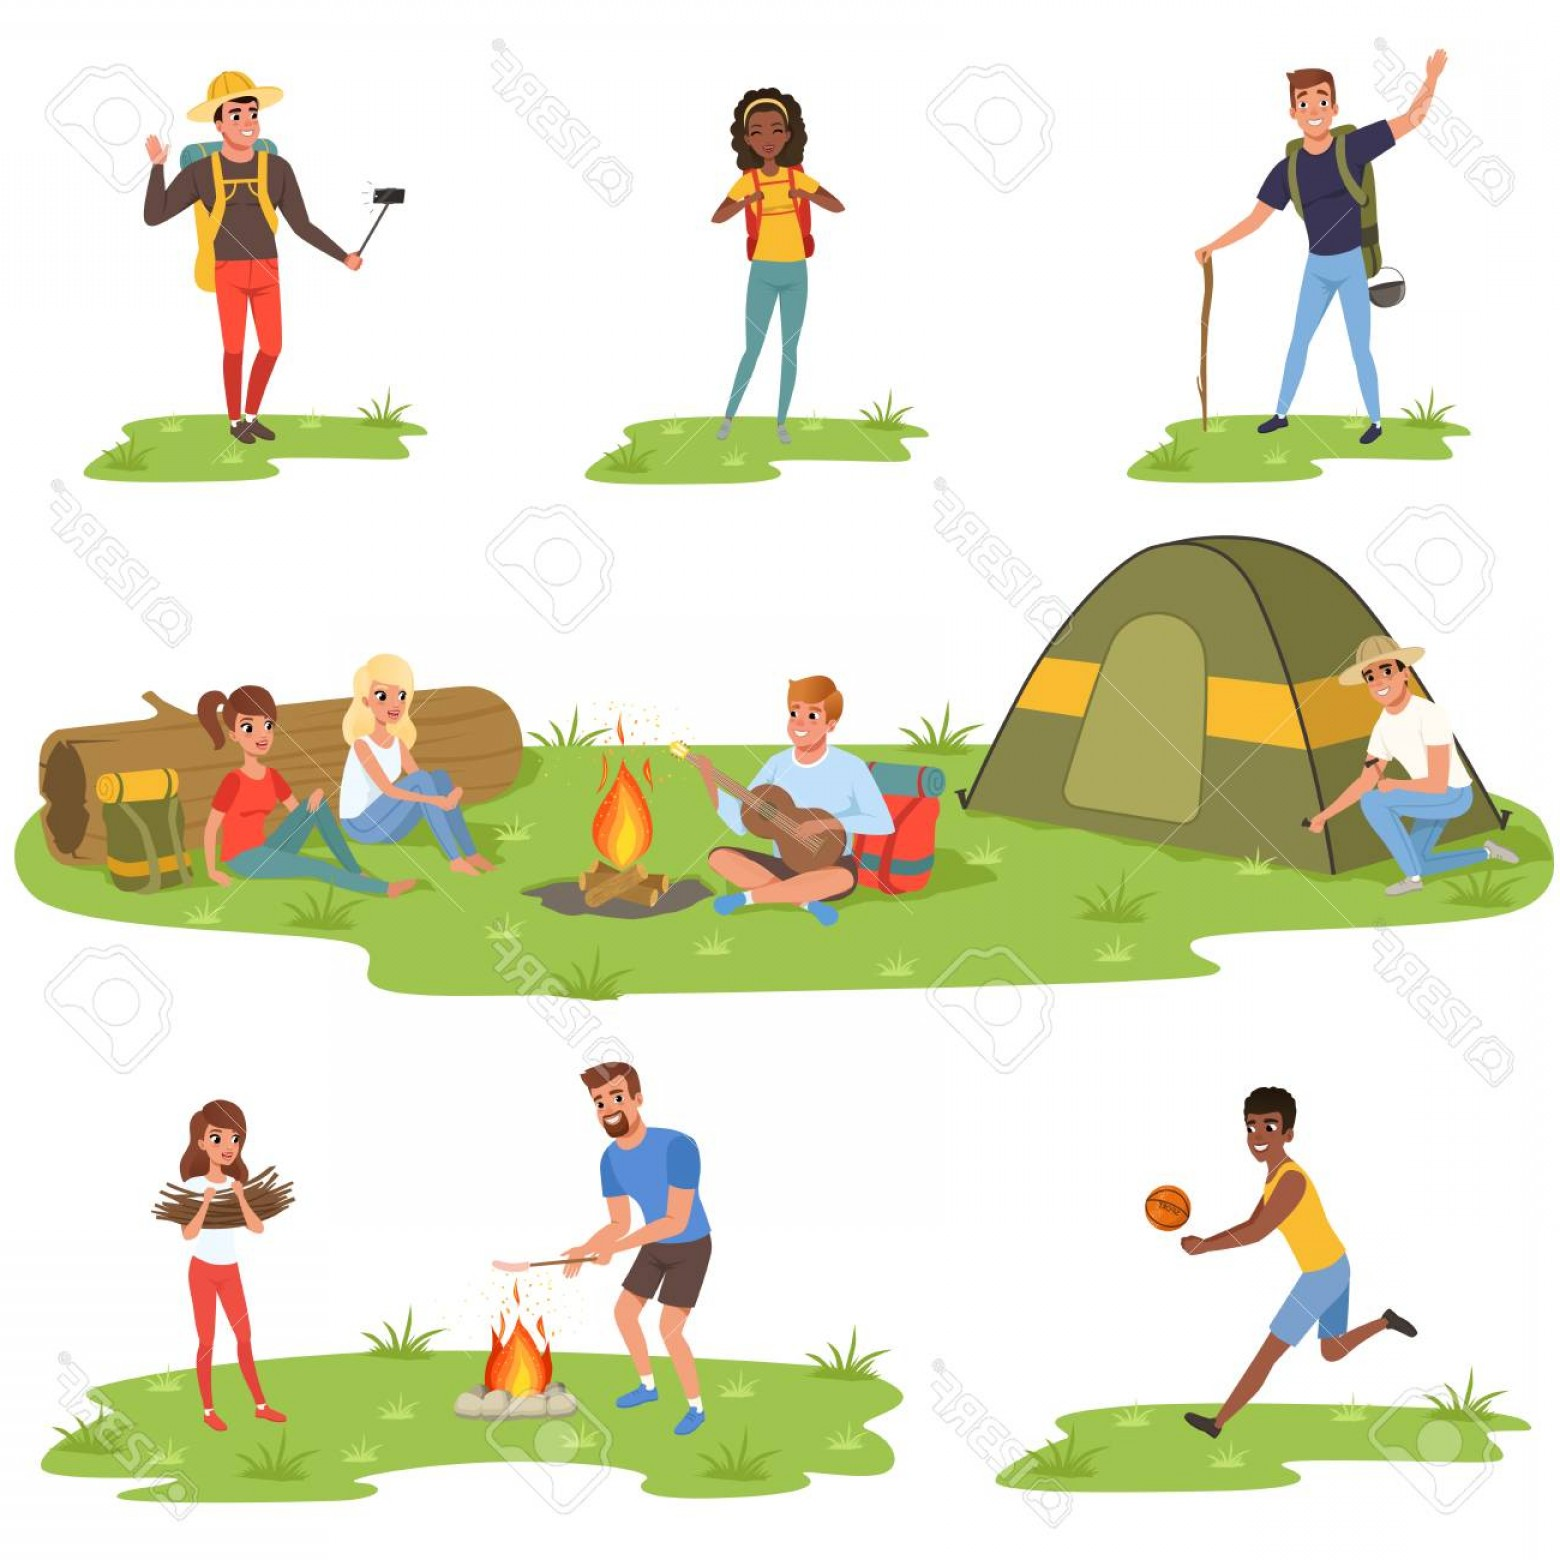 Vector People Free Clip Art: Photostock Vector People On A Camp Set Tourists Traveling Camping And Relaxing Vector Illustrations